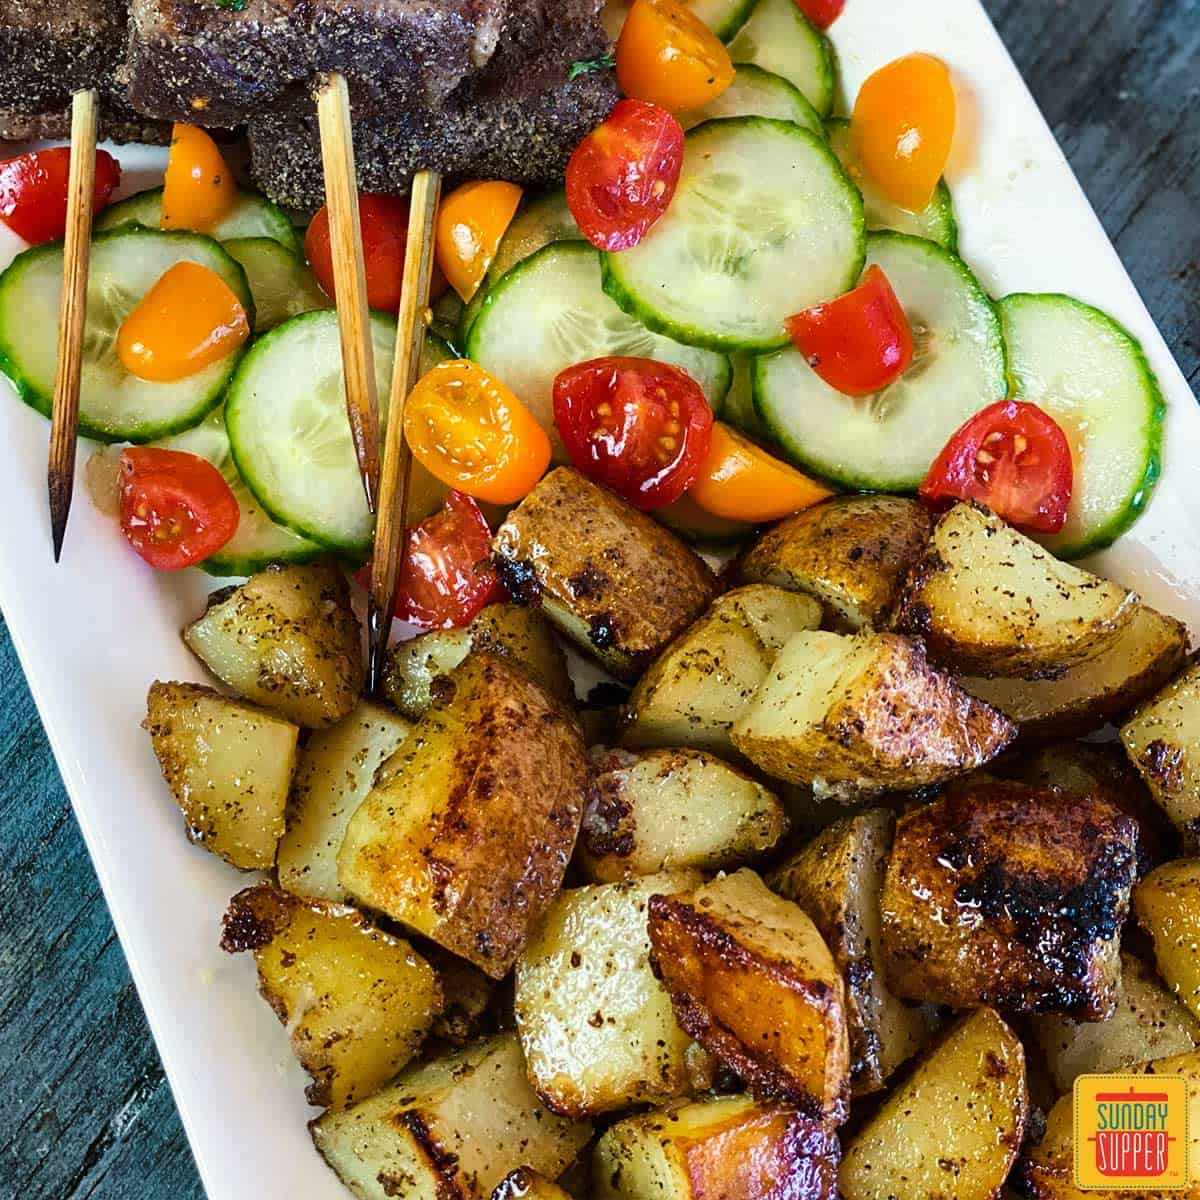 Close up of golden brown, crispy grilled potatoes recipe on a white platter with a side of tomato cucumber salad and Portuguese Beef Skewers just out of shot